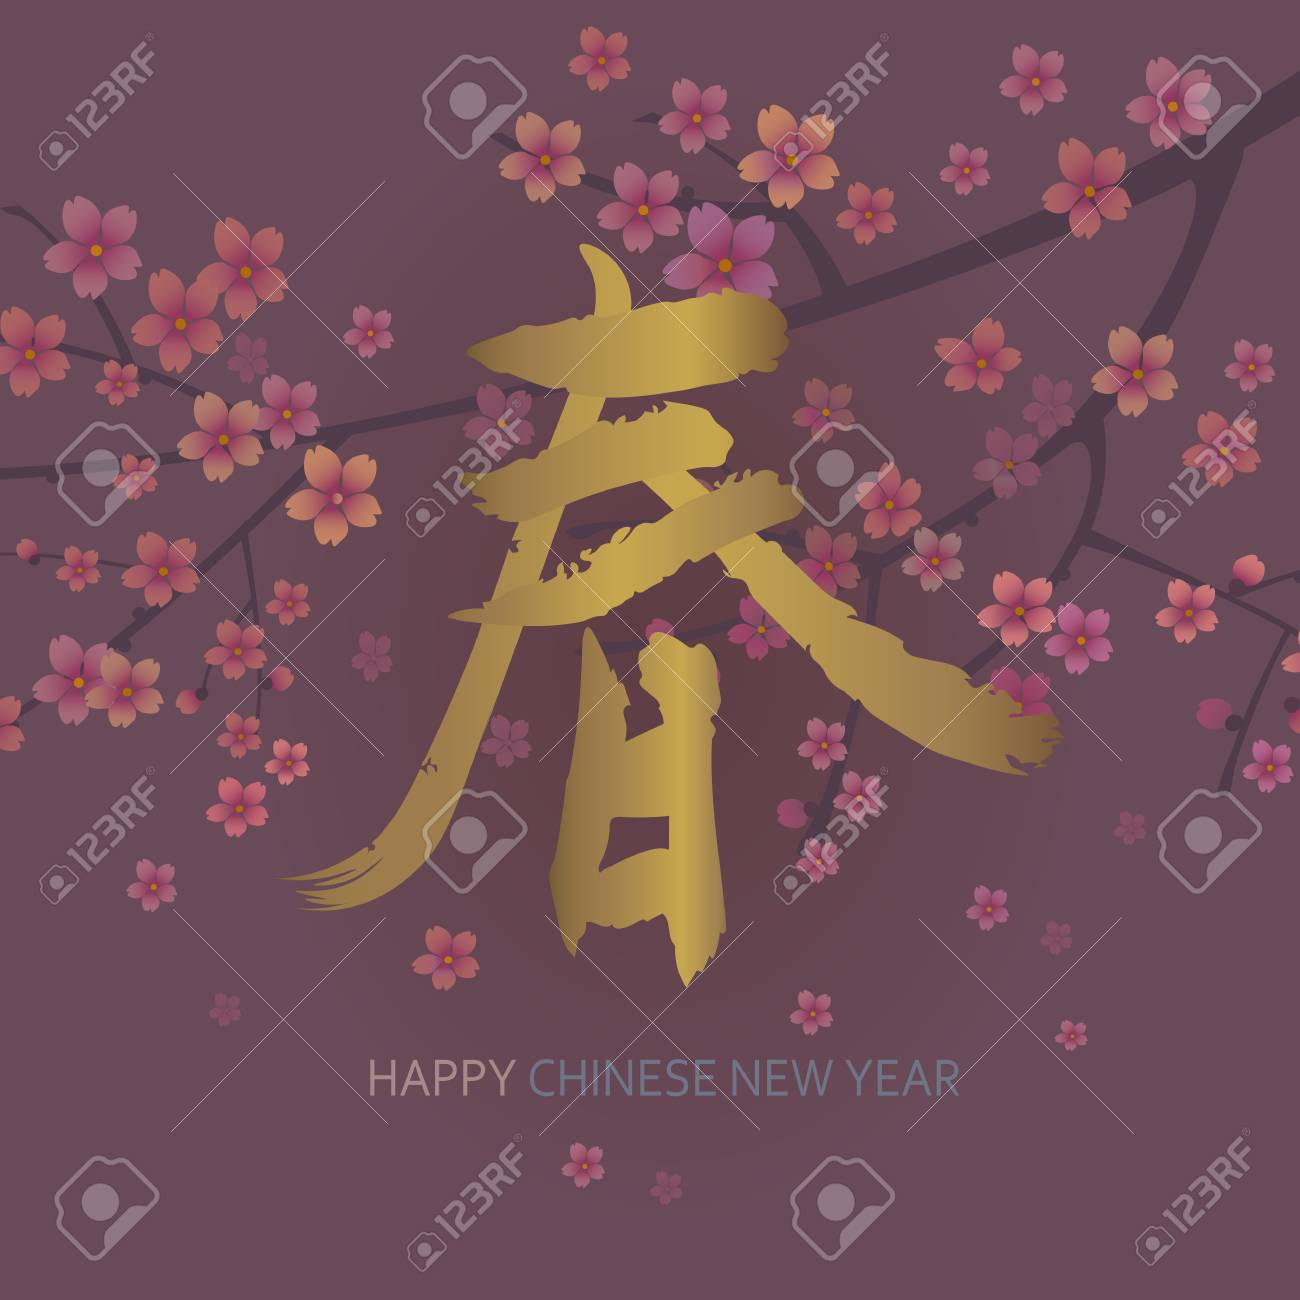 2018 chinese new year greeting card with a gold hand drown calligraphy and sakura branches on